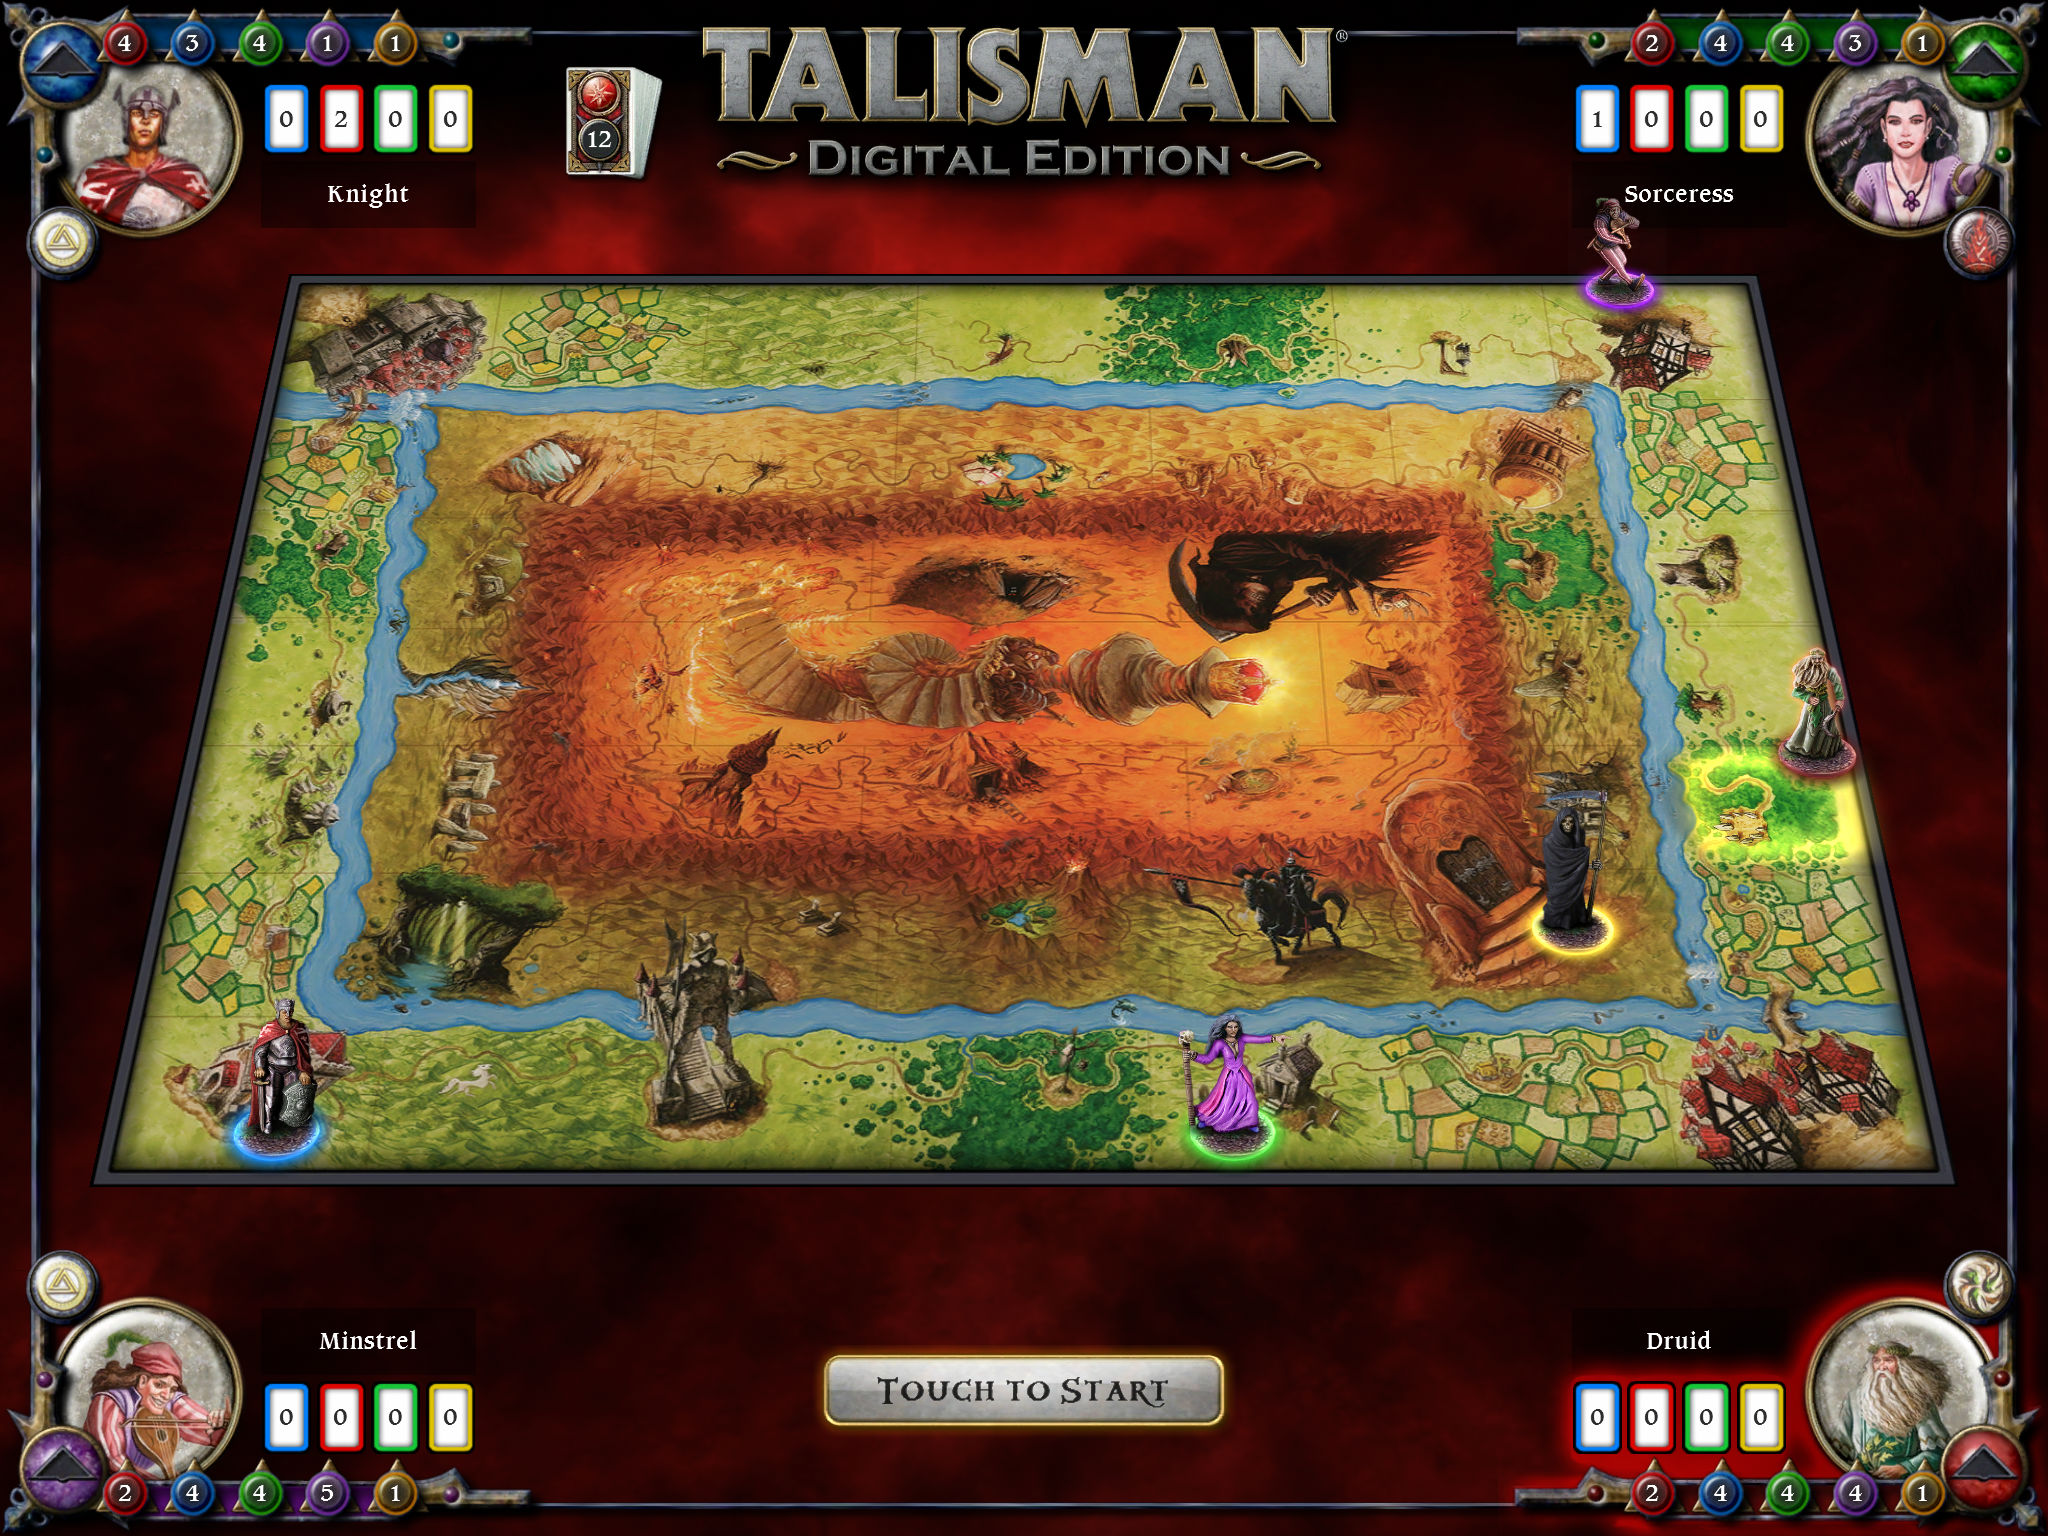 In under an hour we're taking to Twitch to stream some Talisman: Digital Edition